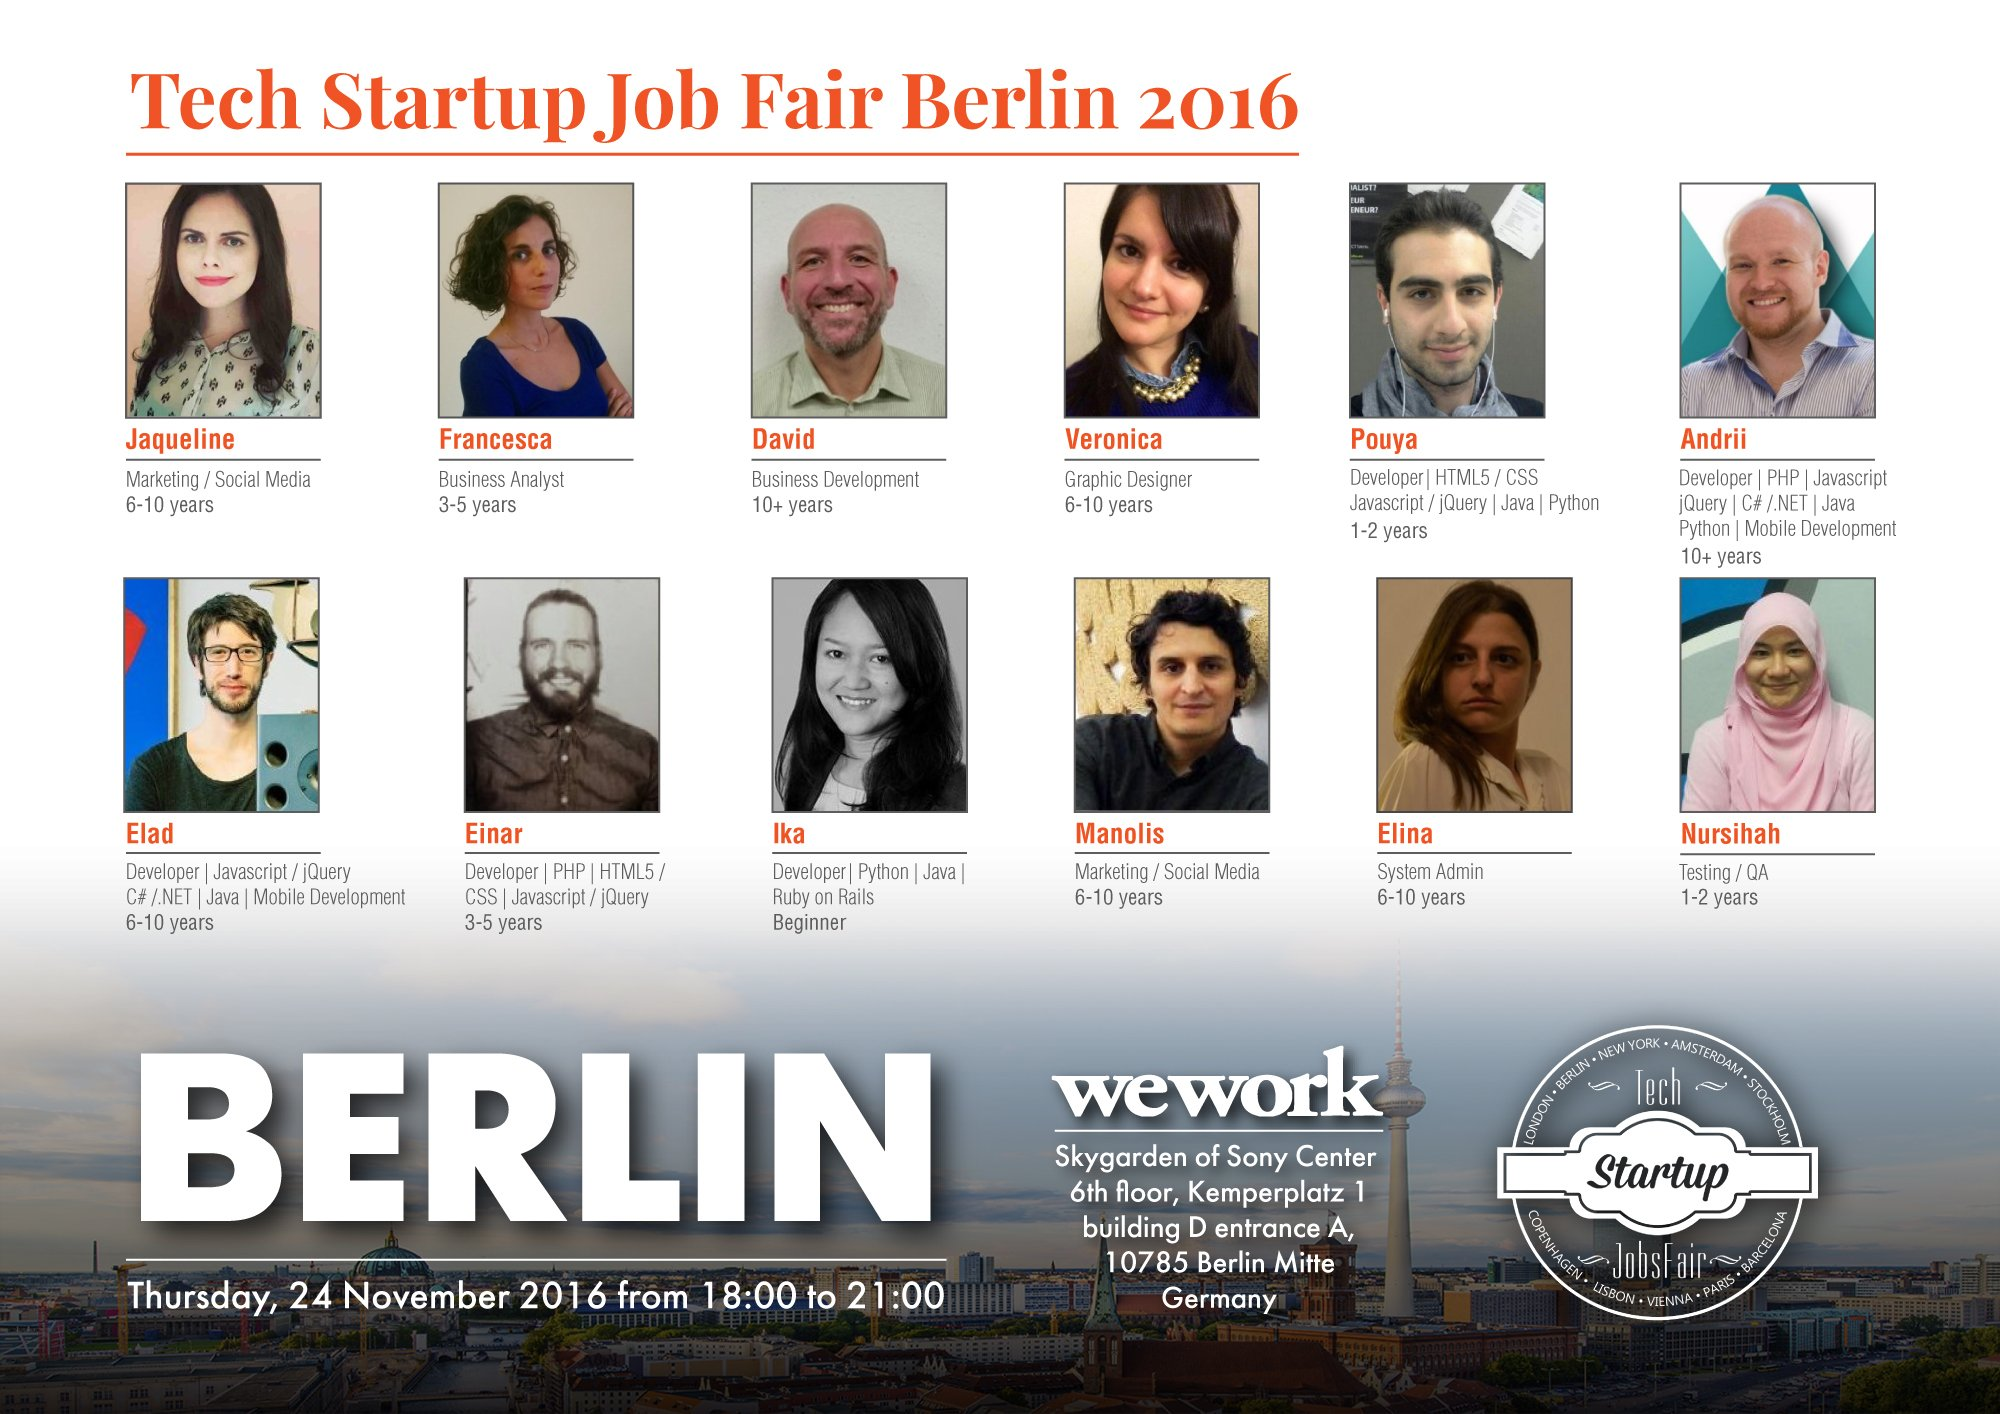 A Must-Attend #hiring #event in Berlin for #tech #startups https://t.co/kikVuwUpMQ A great way to network with experienced & skilled techies https://t.co/oOThY1ou3z